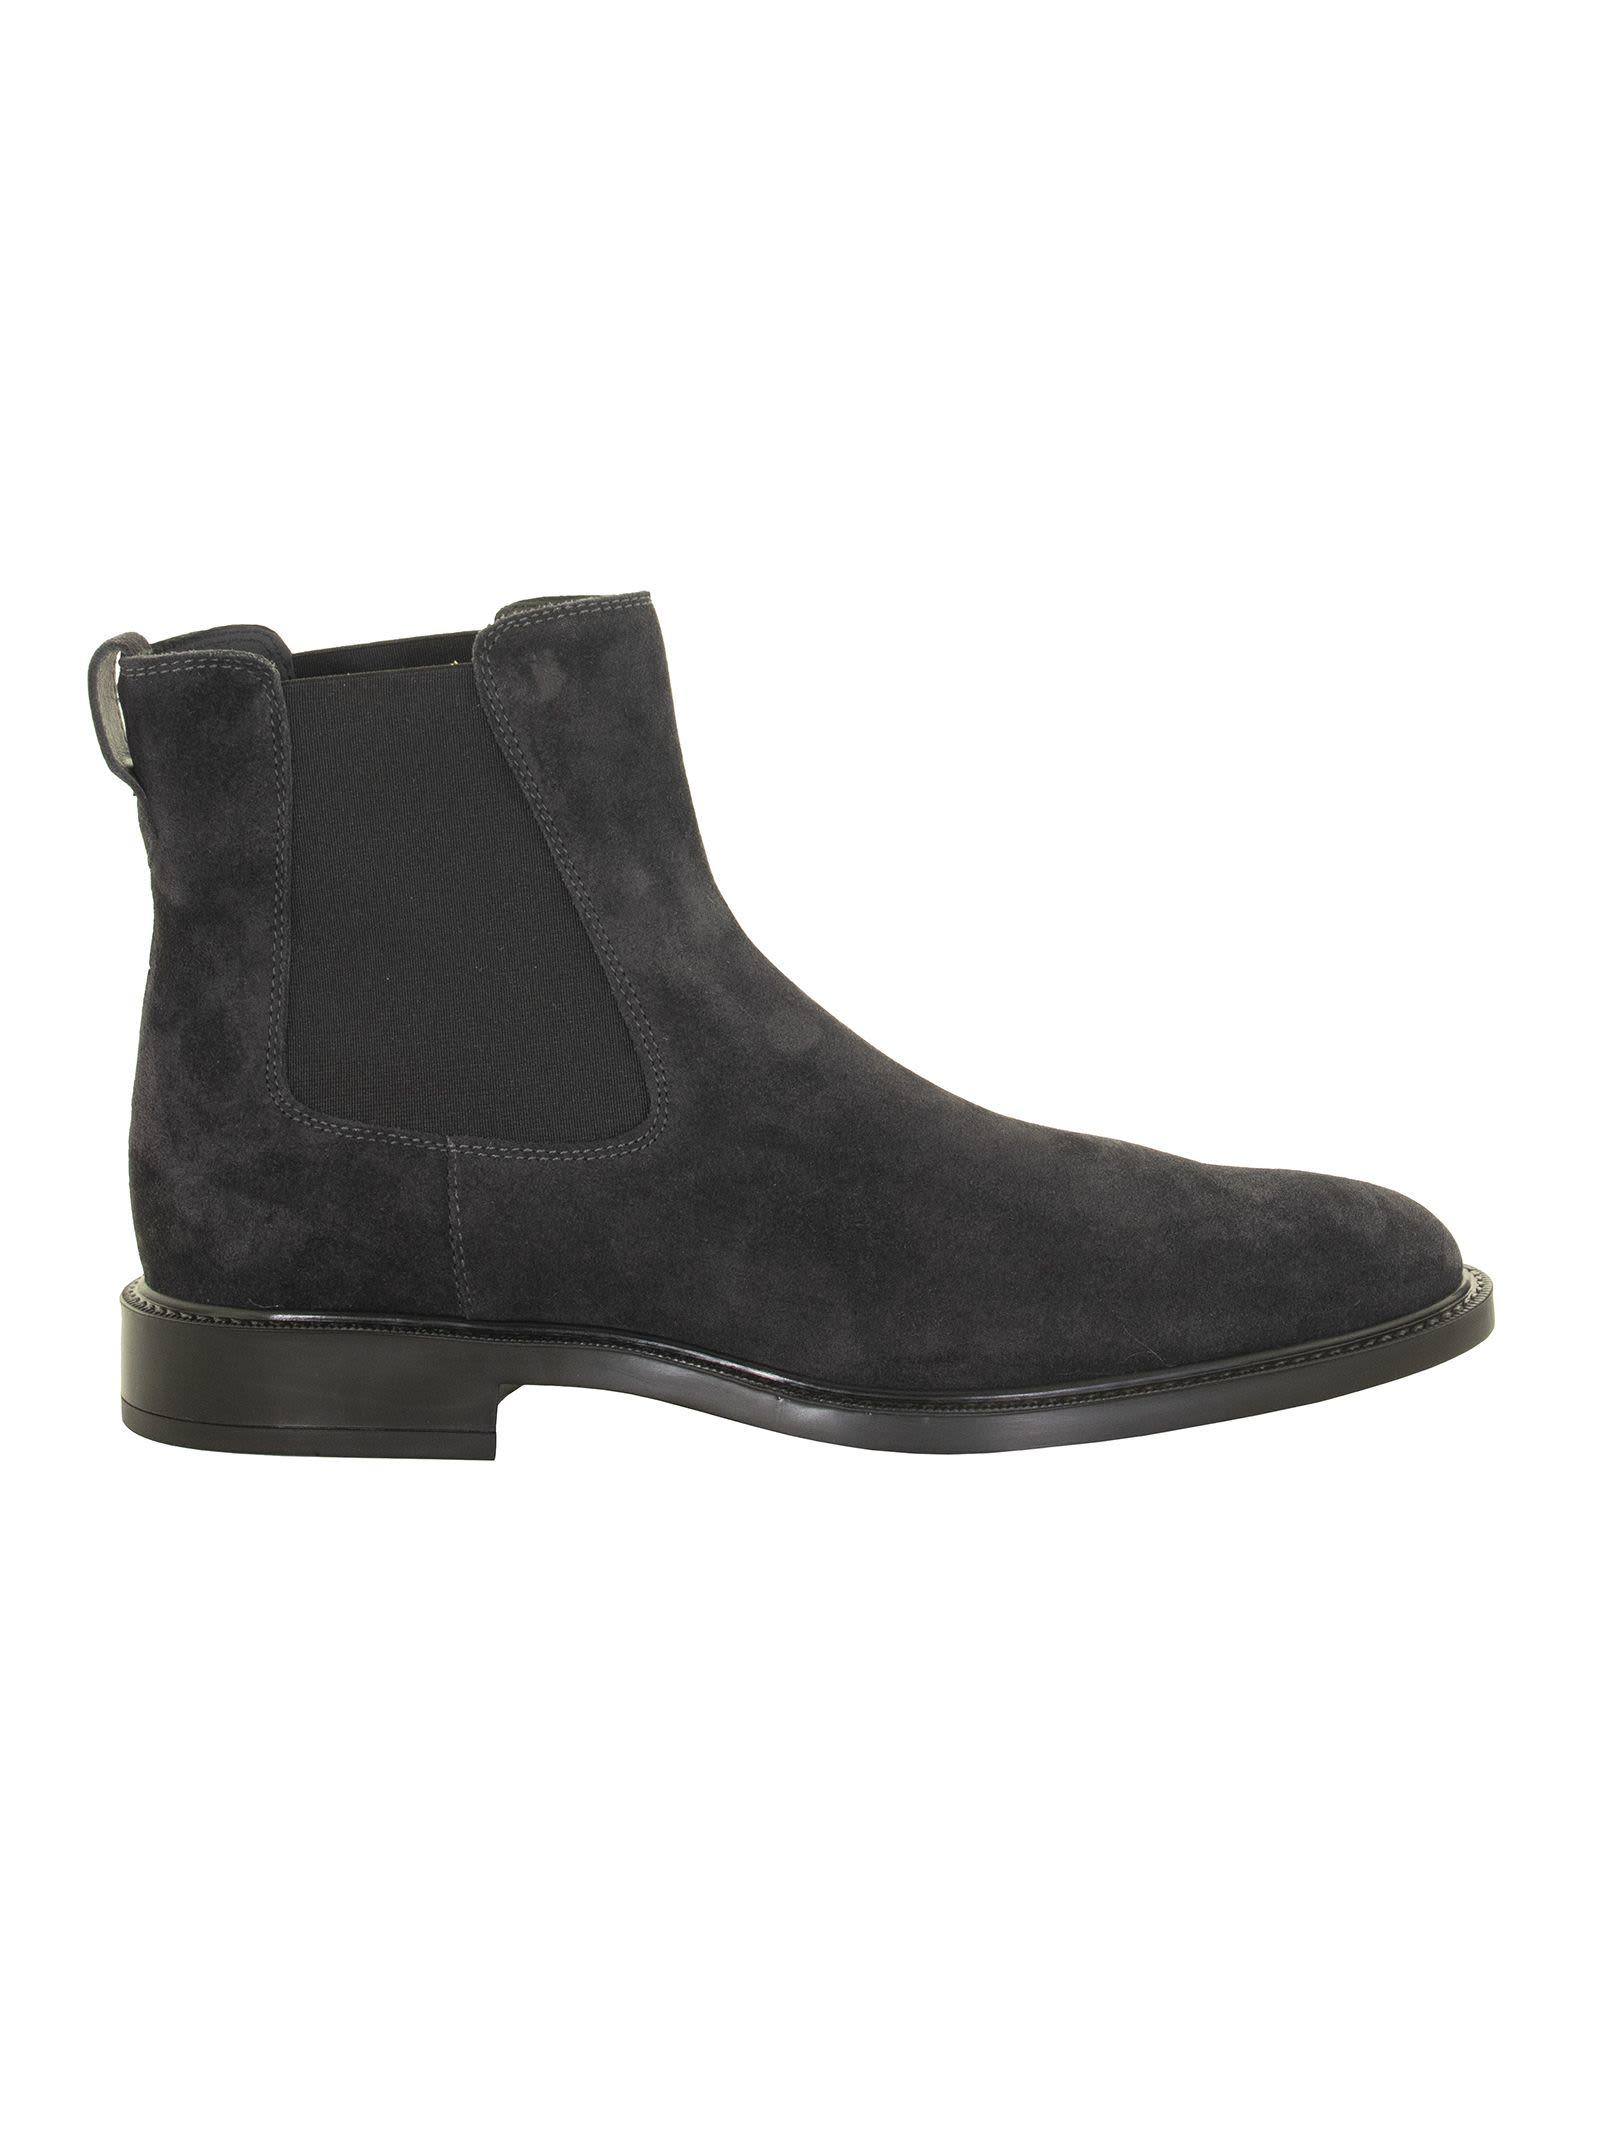 Tods Blue Ankle Boot